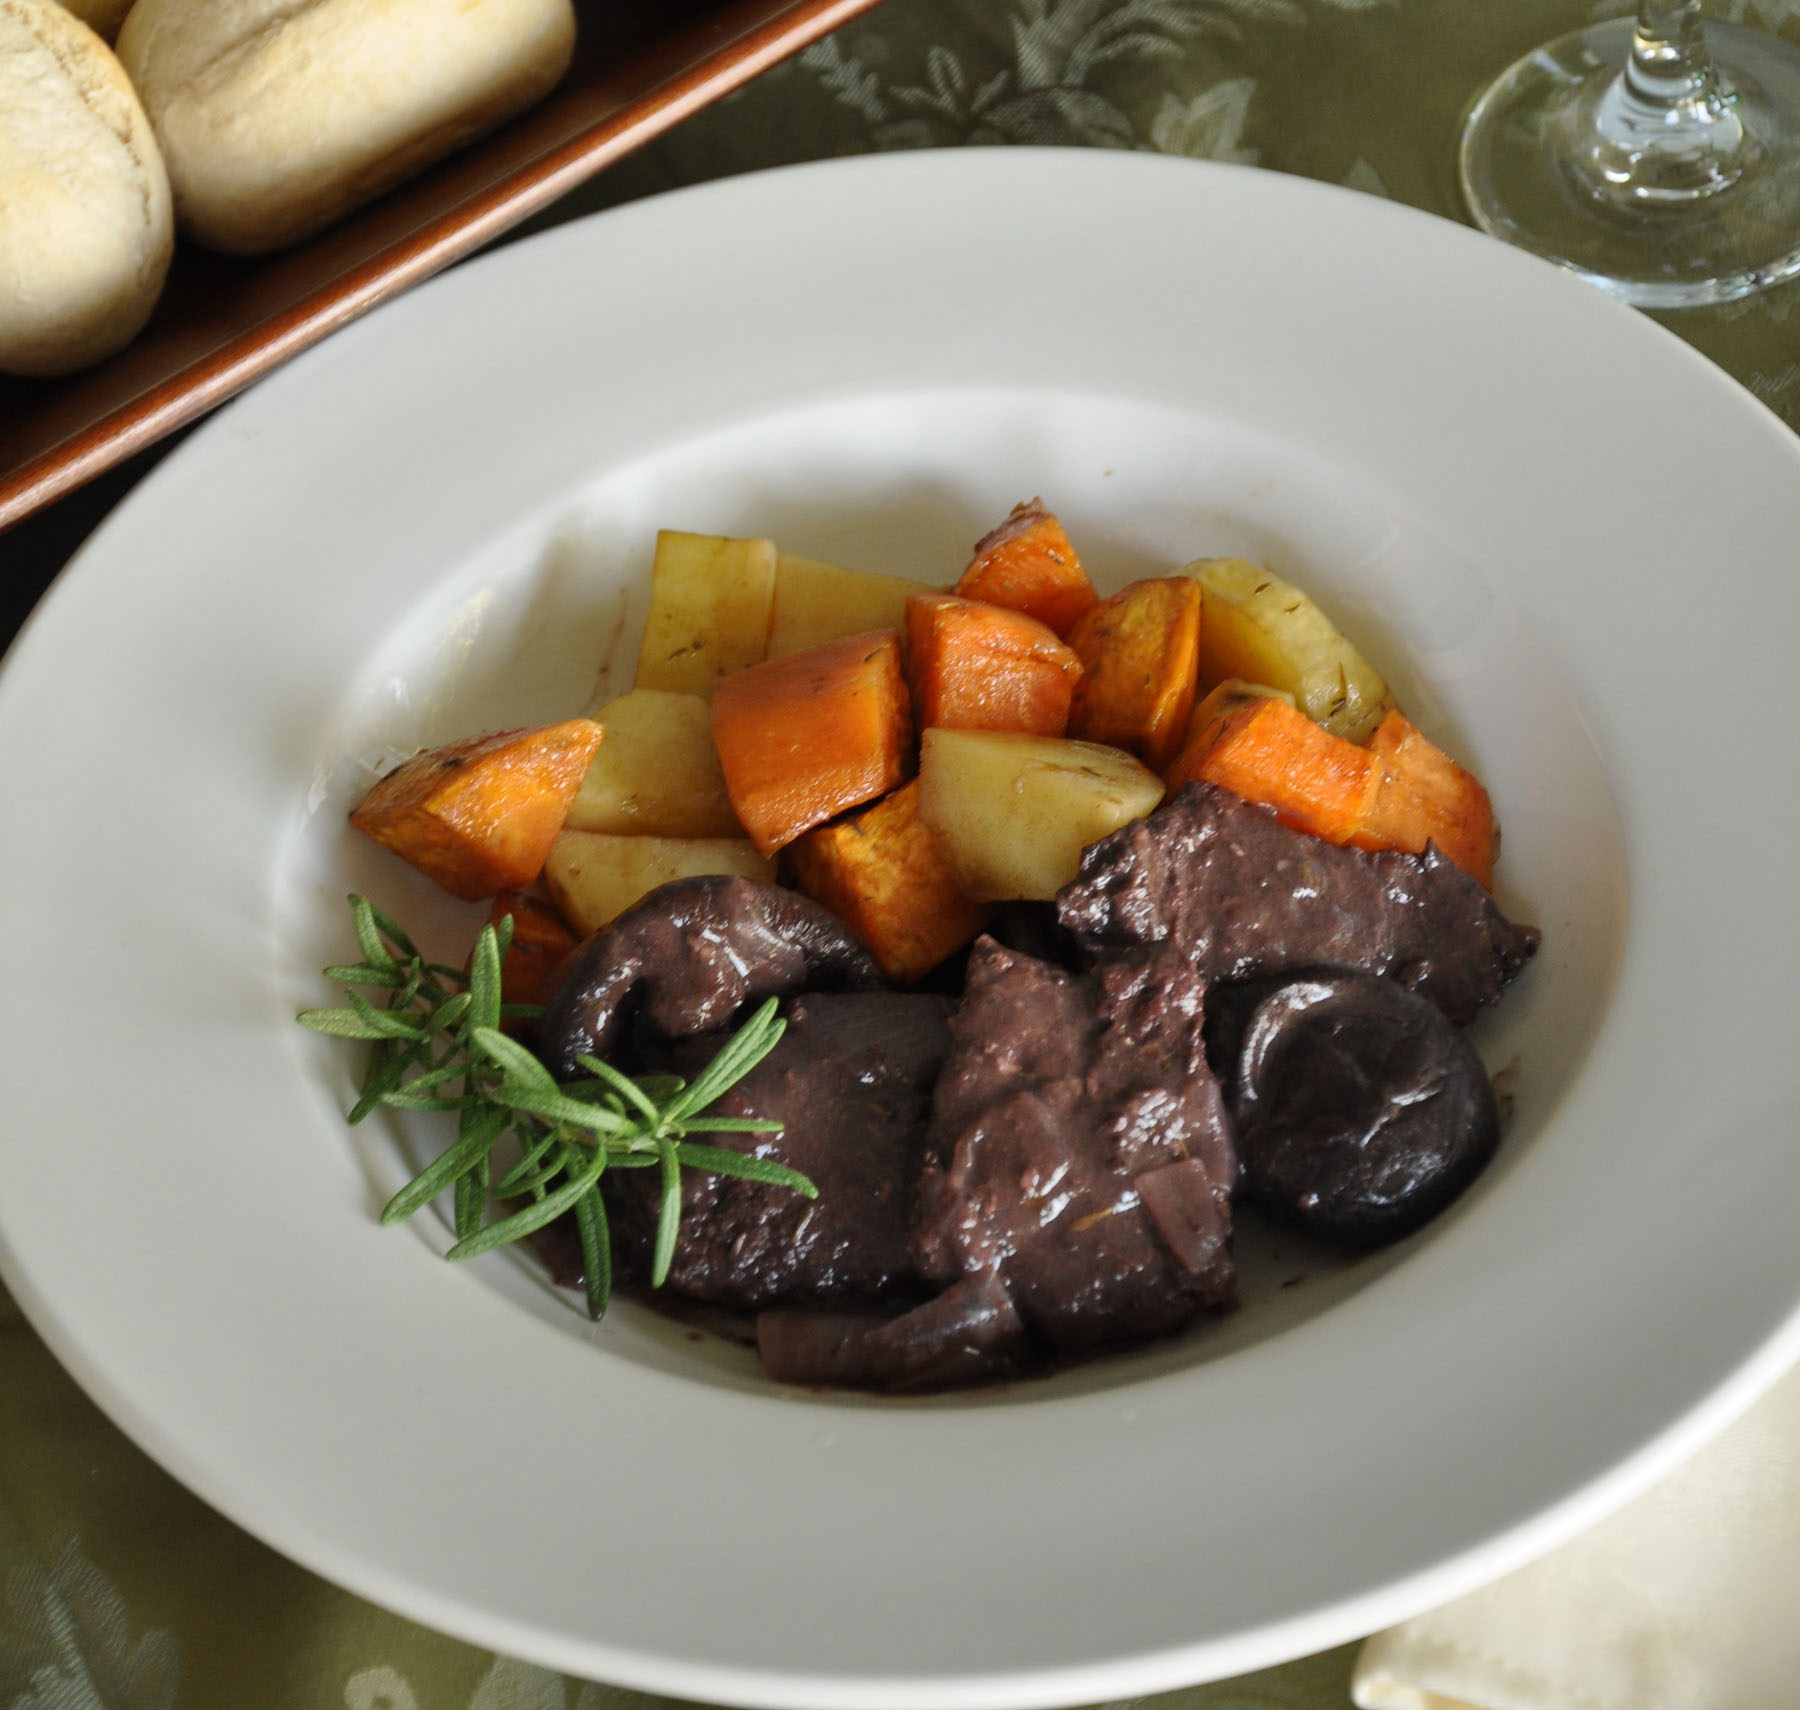 Braised Venison with Rosemary and Shiitake